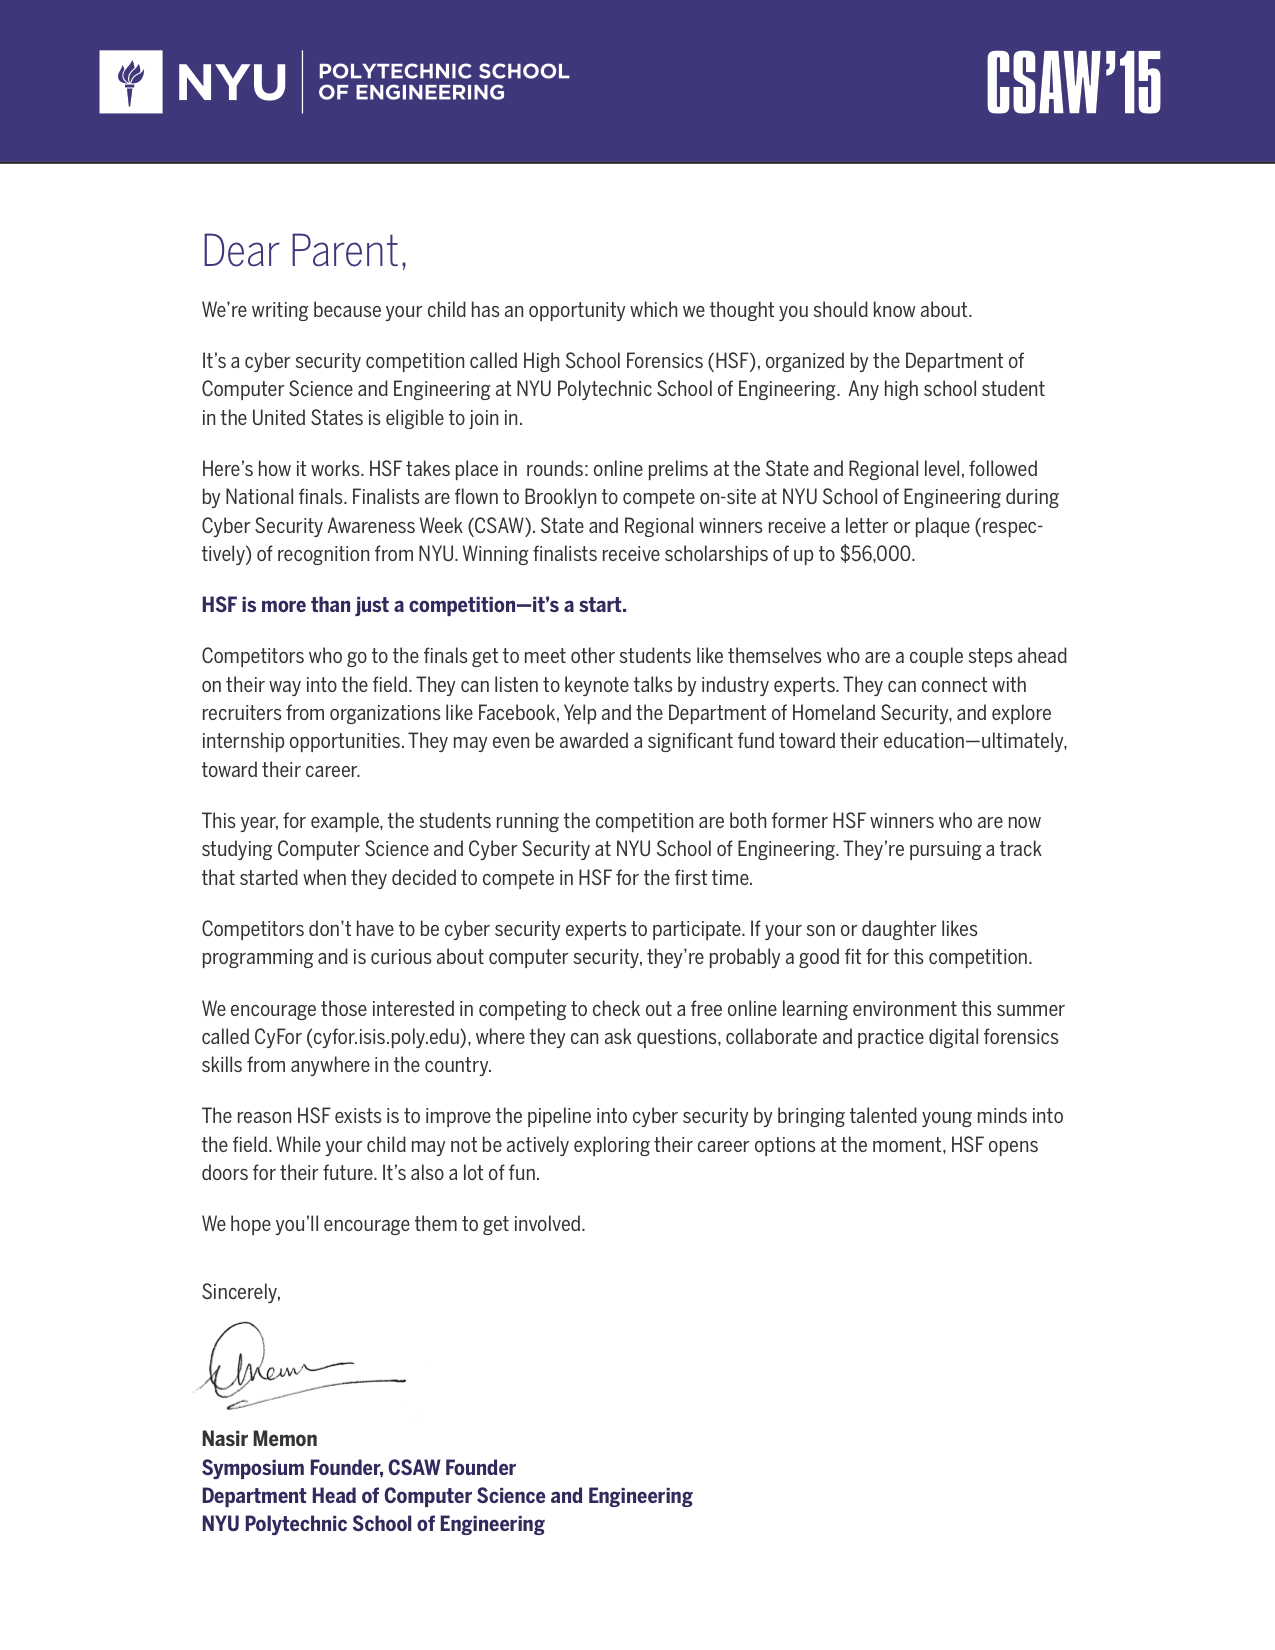 HSF Parent Letter